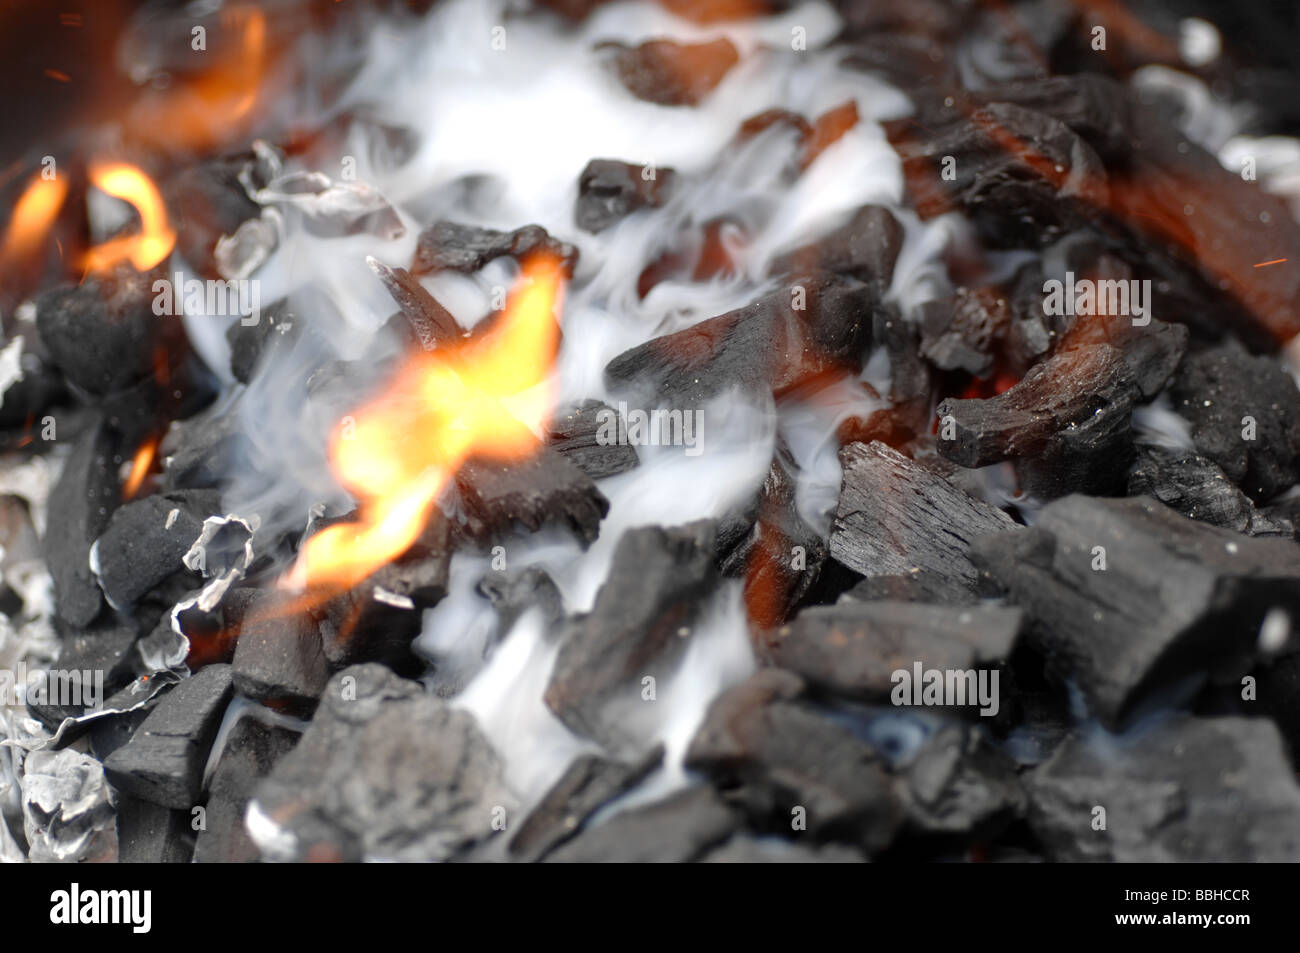 barbecue charcoal, BBQ coal fire - Stock Image